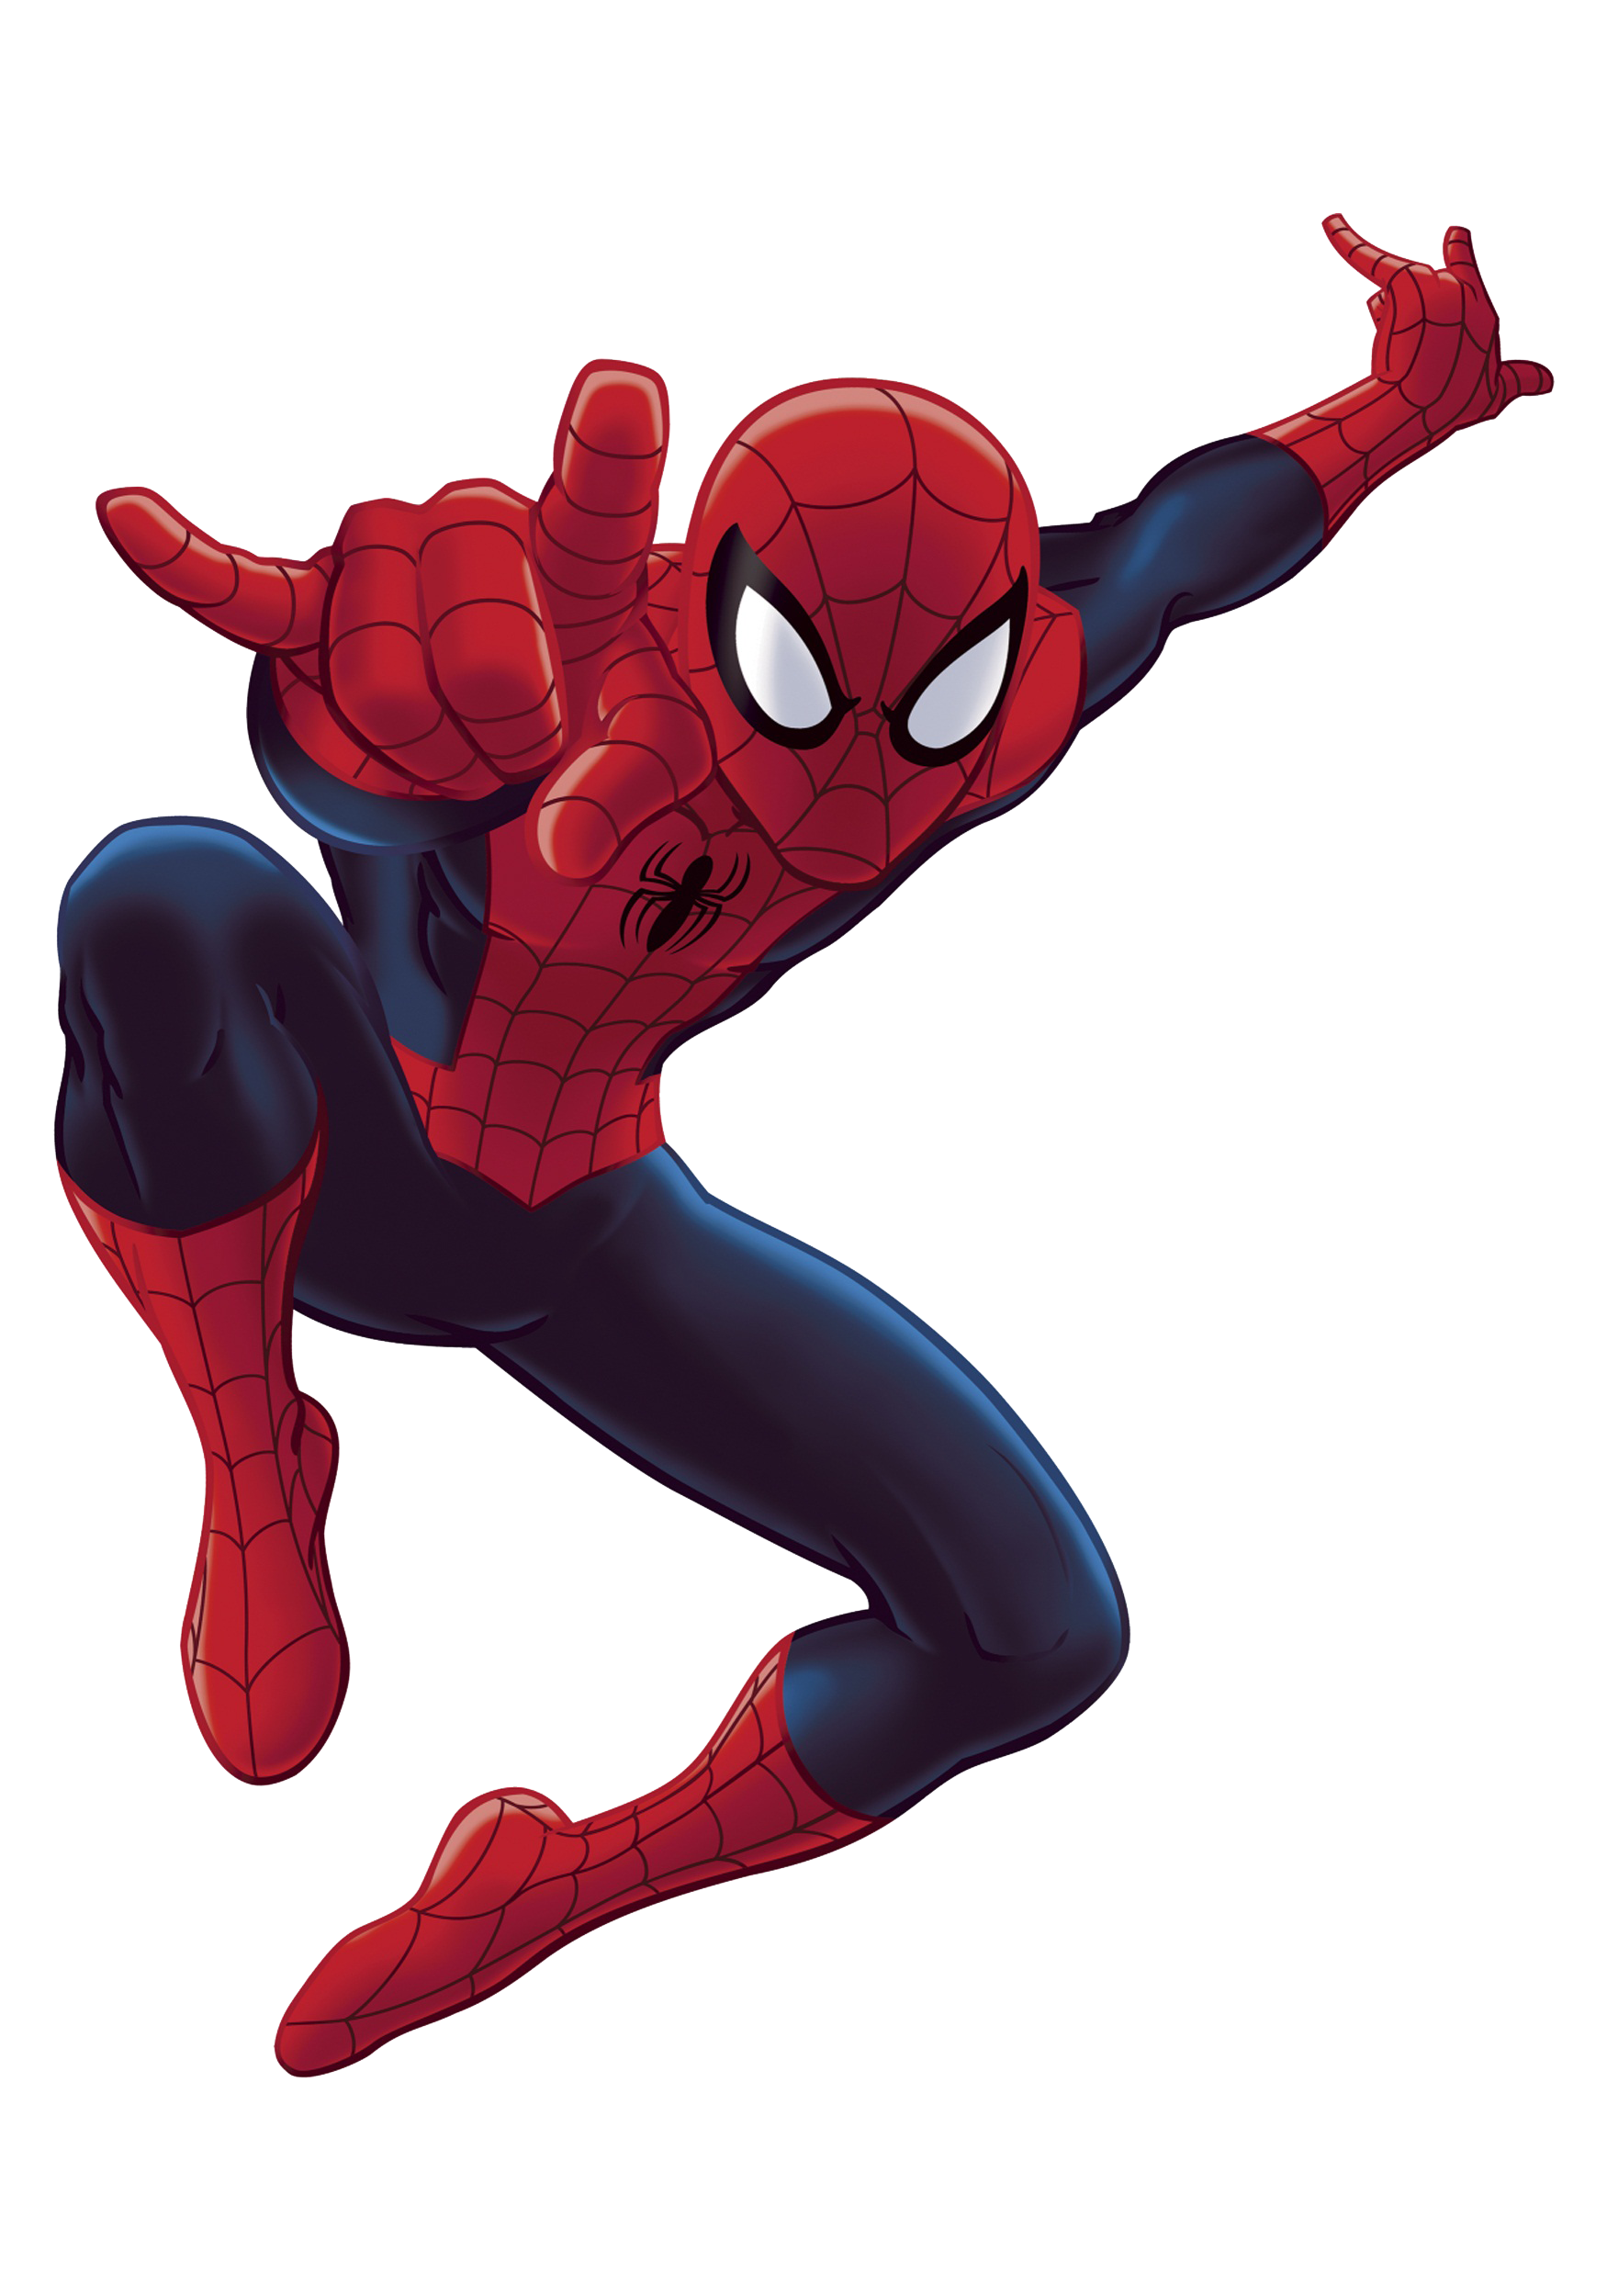 Spider Man Clipart Free Download Best Spider Man Clipart